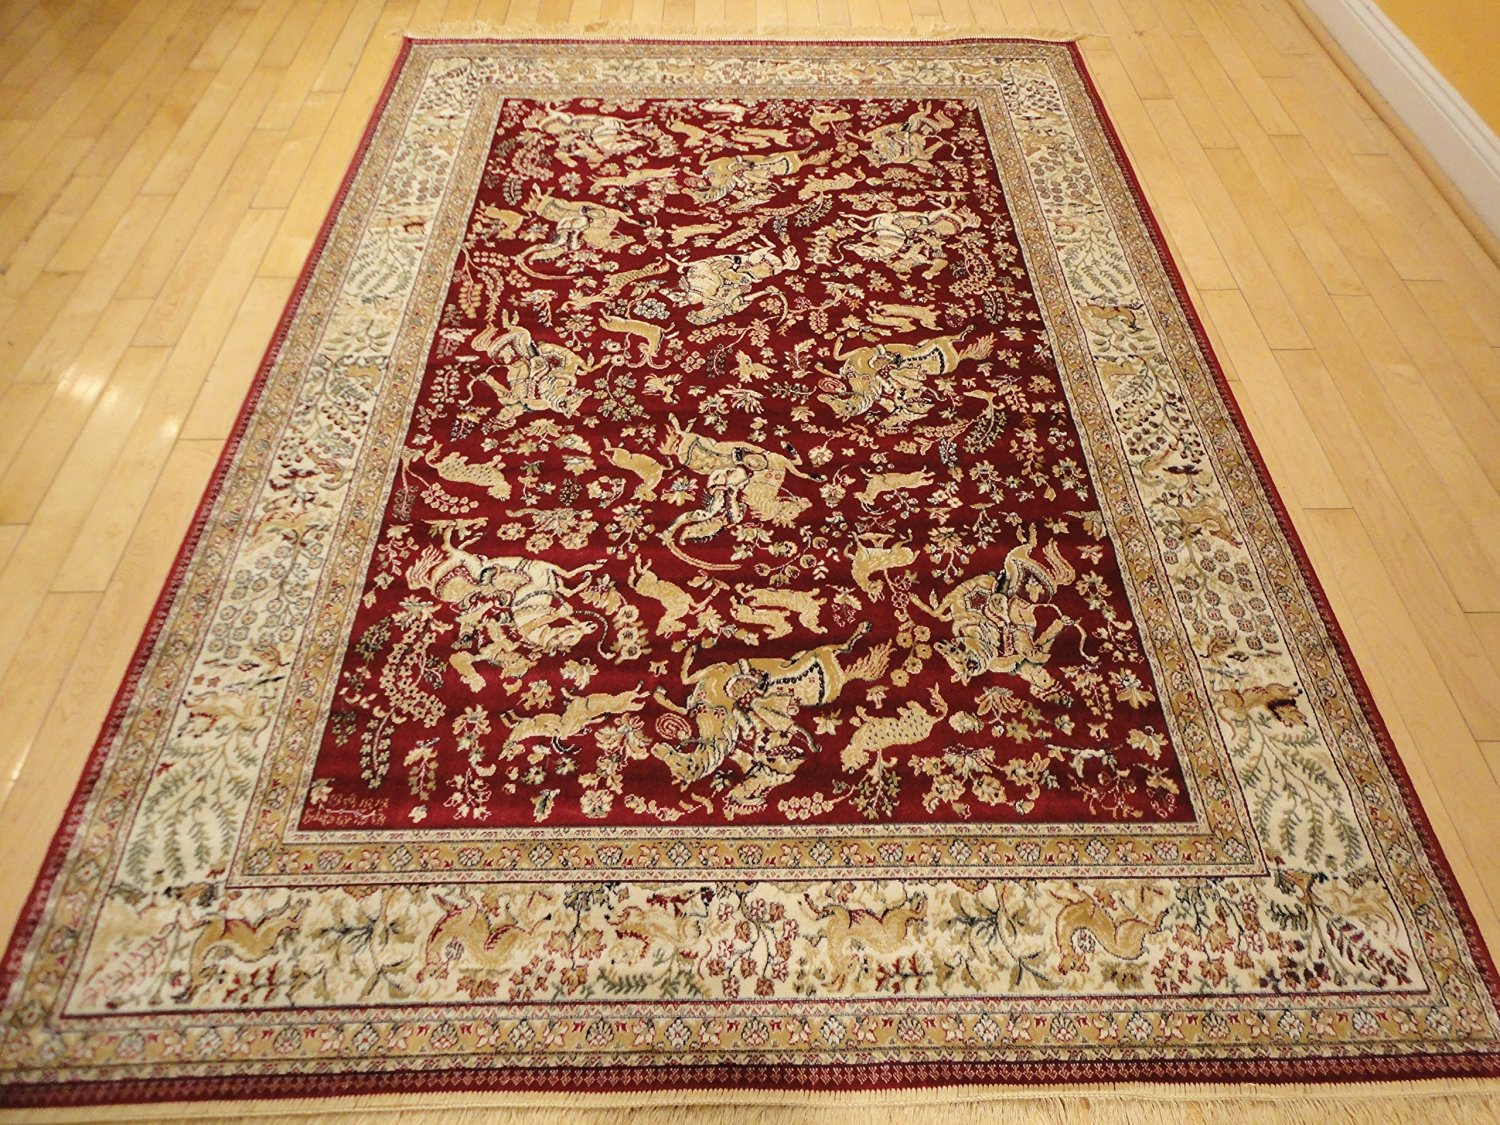 Get Quotations Silk Area Rug Large Rugs 8x12 Red Traditional Floor Carpet High End Animal Print